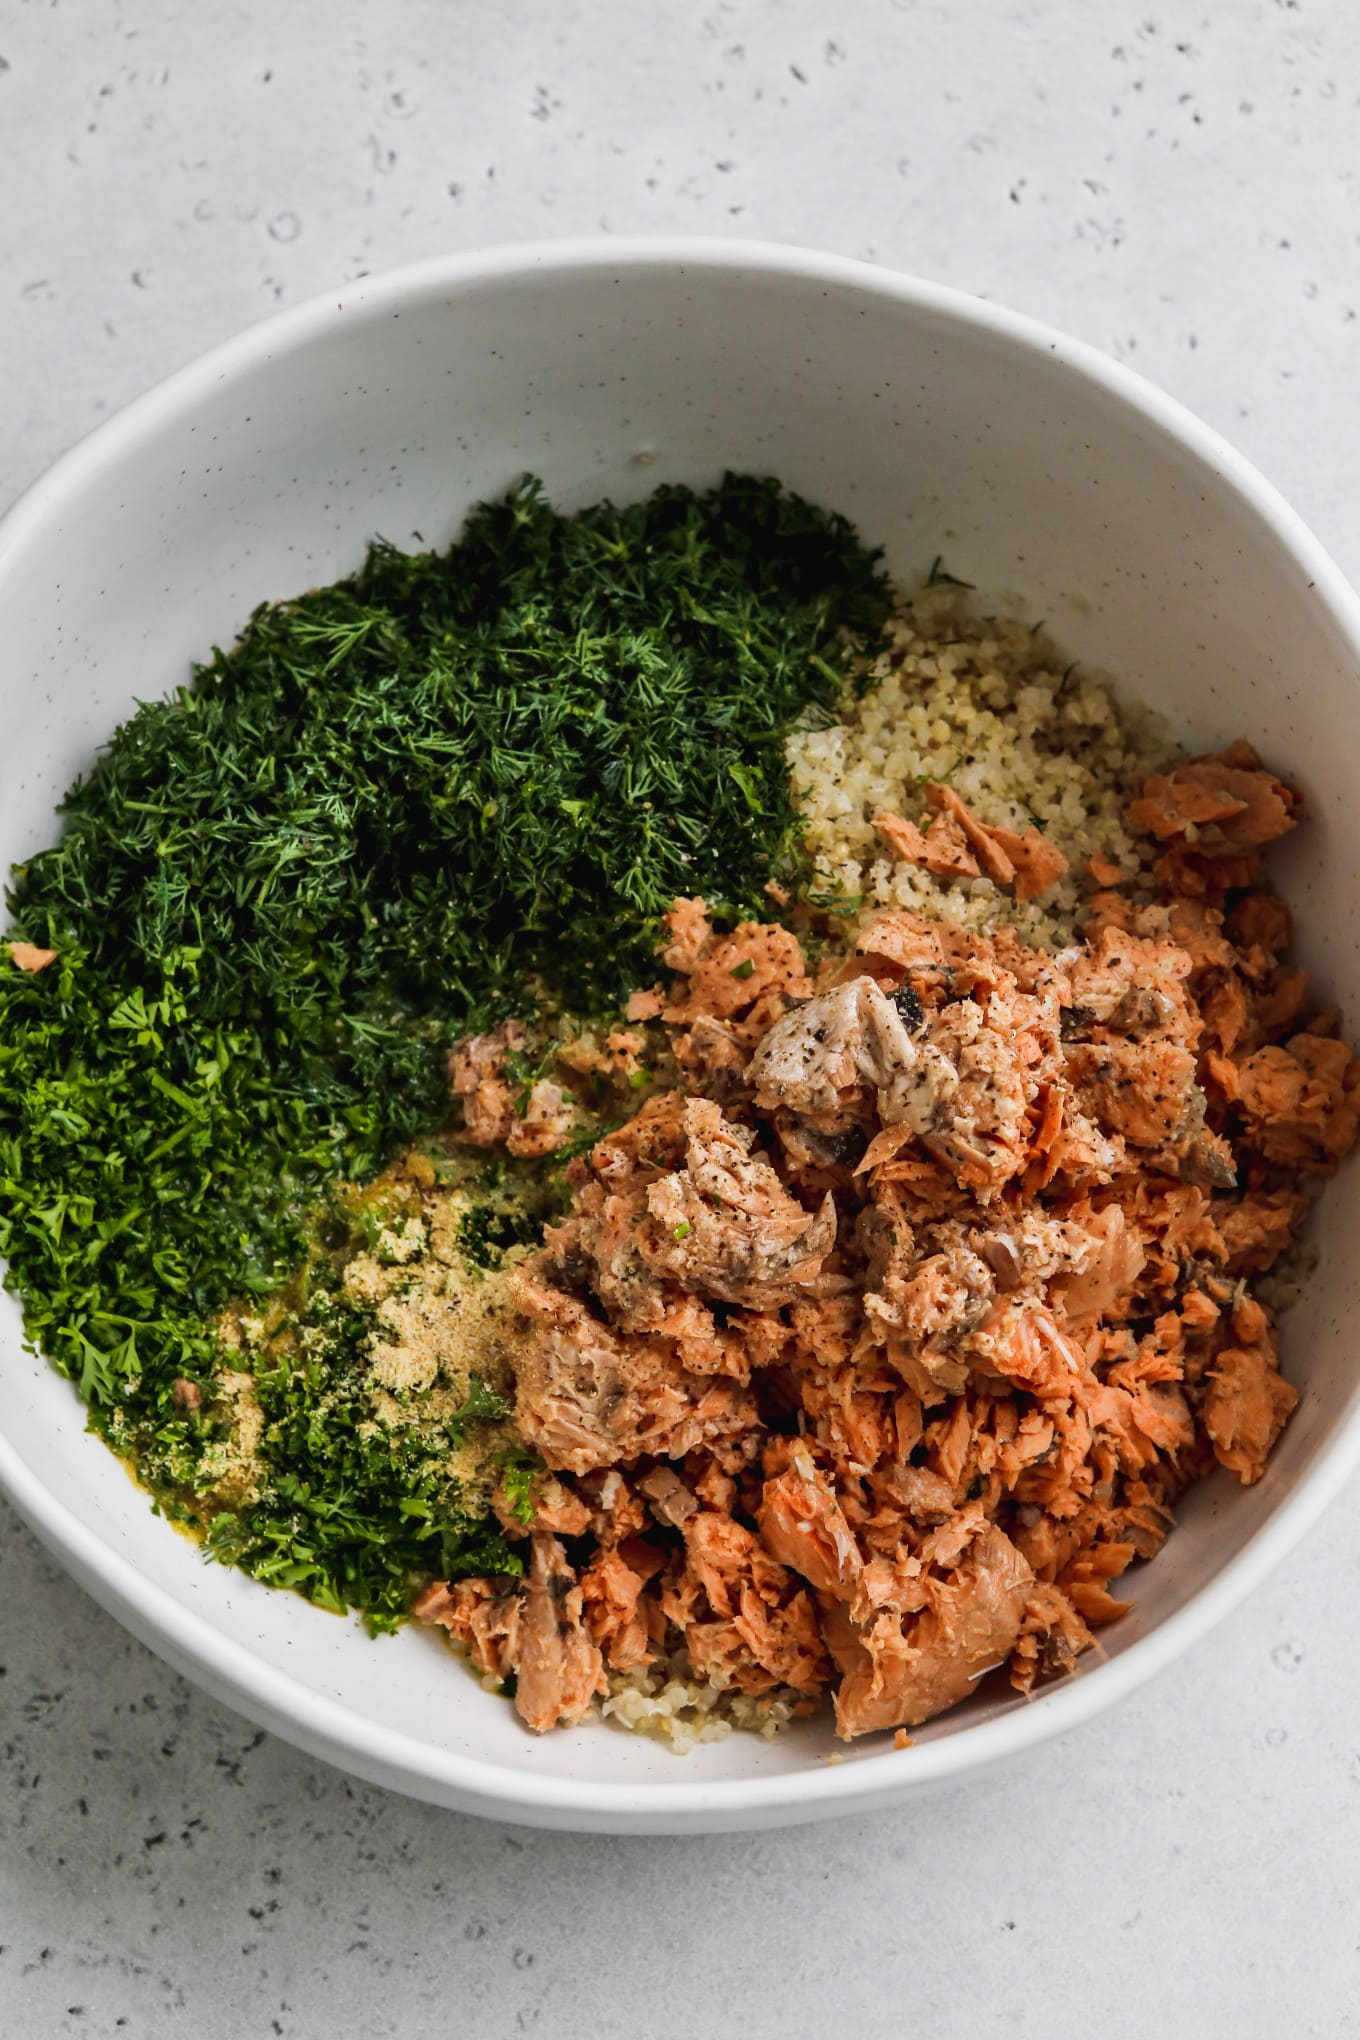 Overhead photo of a large white mixing bowl filled with chopped herbs, quinoa, and canned salmon.